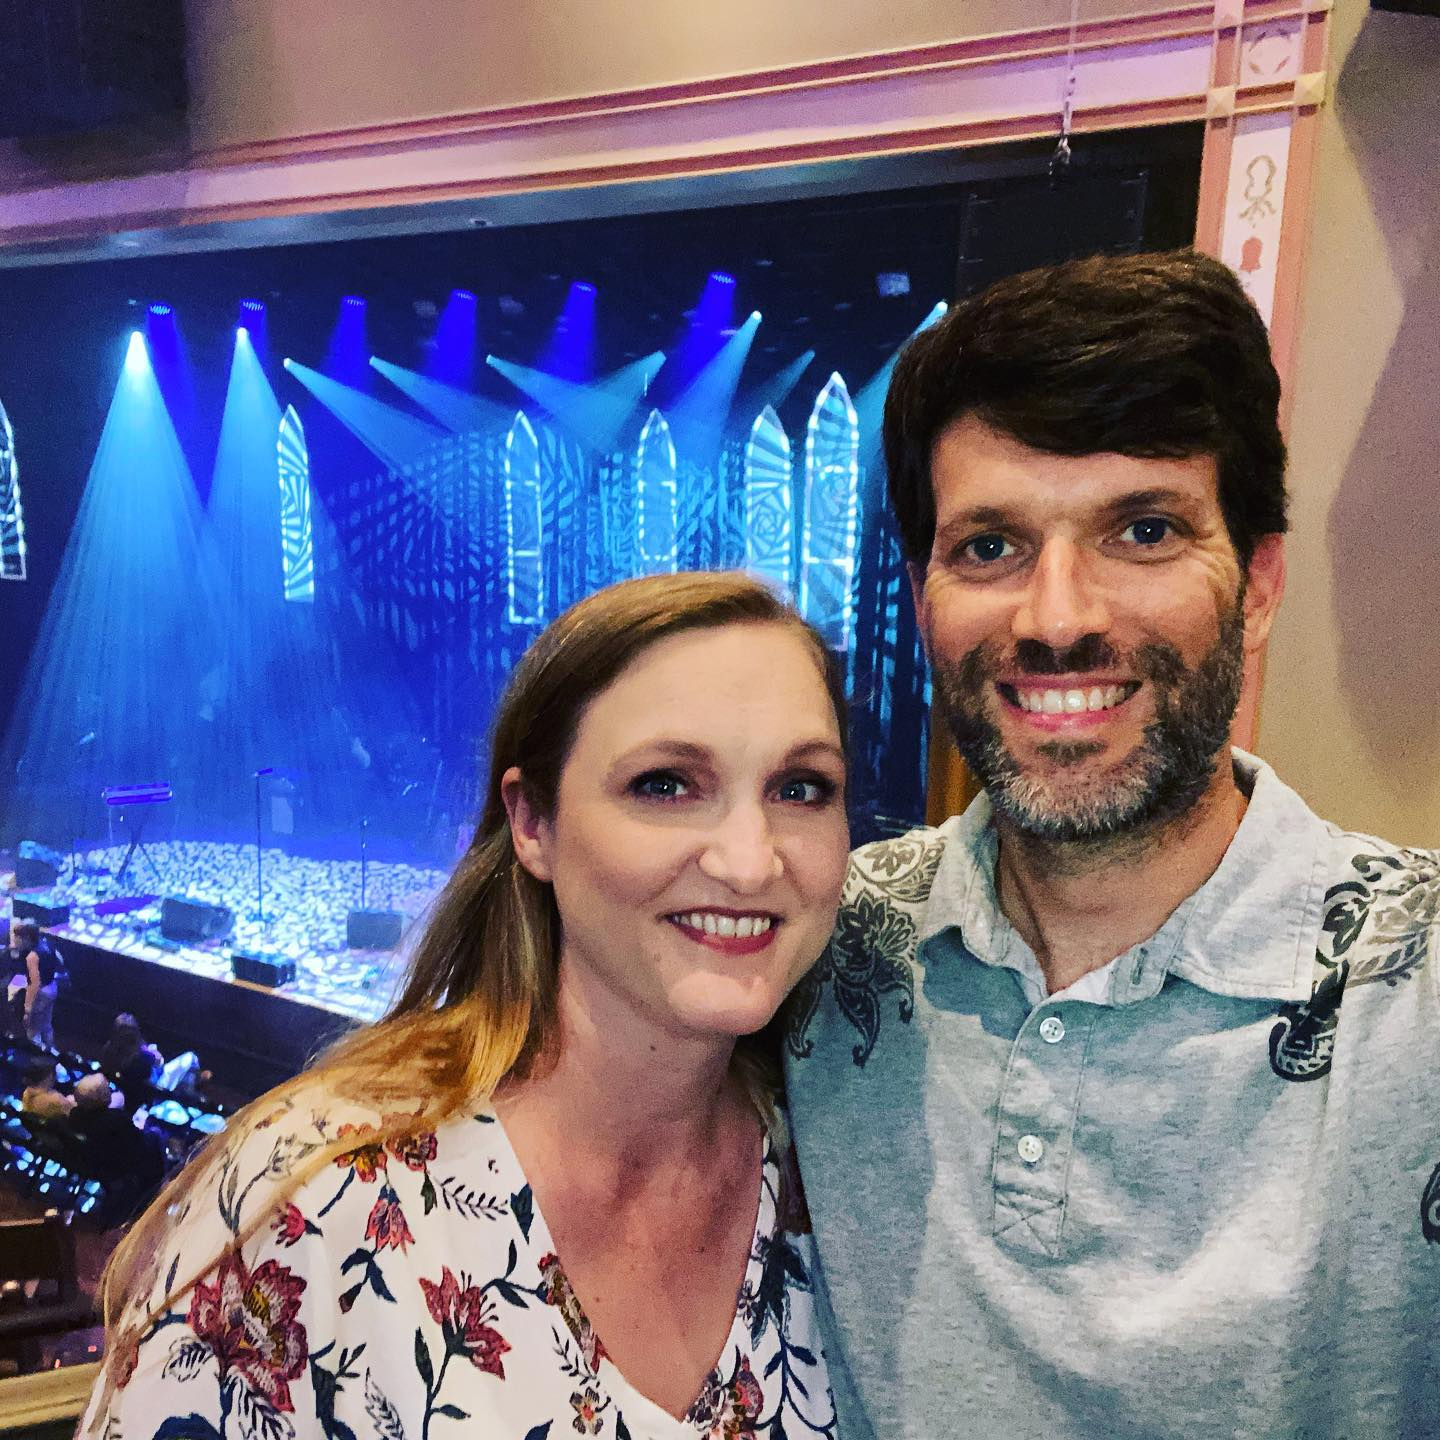 Date night in my favorite room with my favorite girl. Here to see @ellieholcomb headline @theryman for the first time!! #family #livemusic